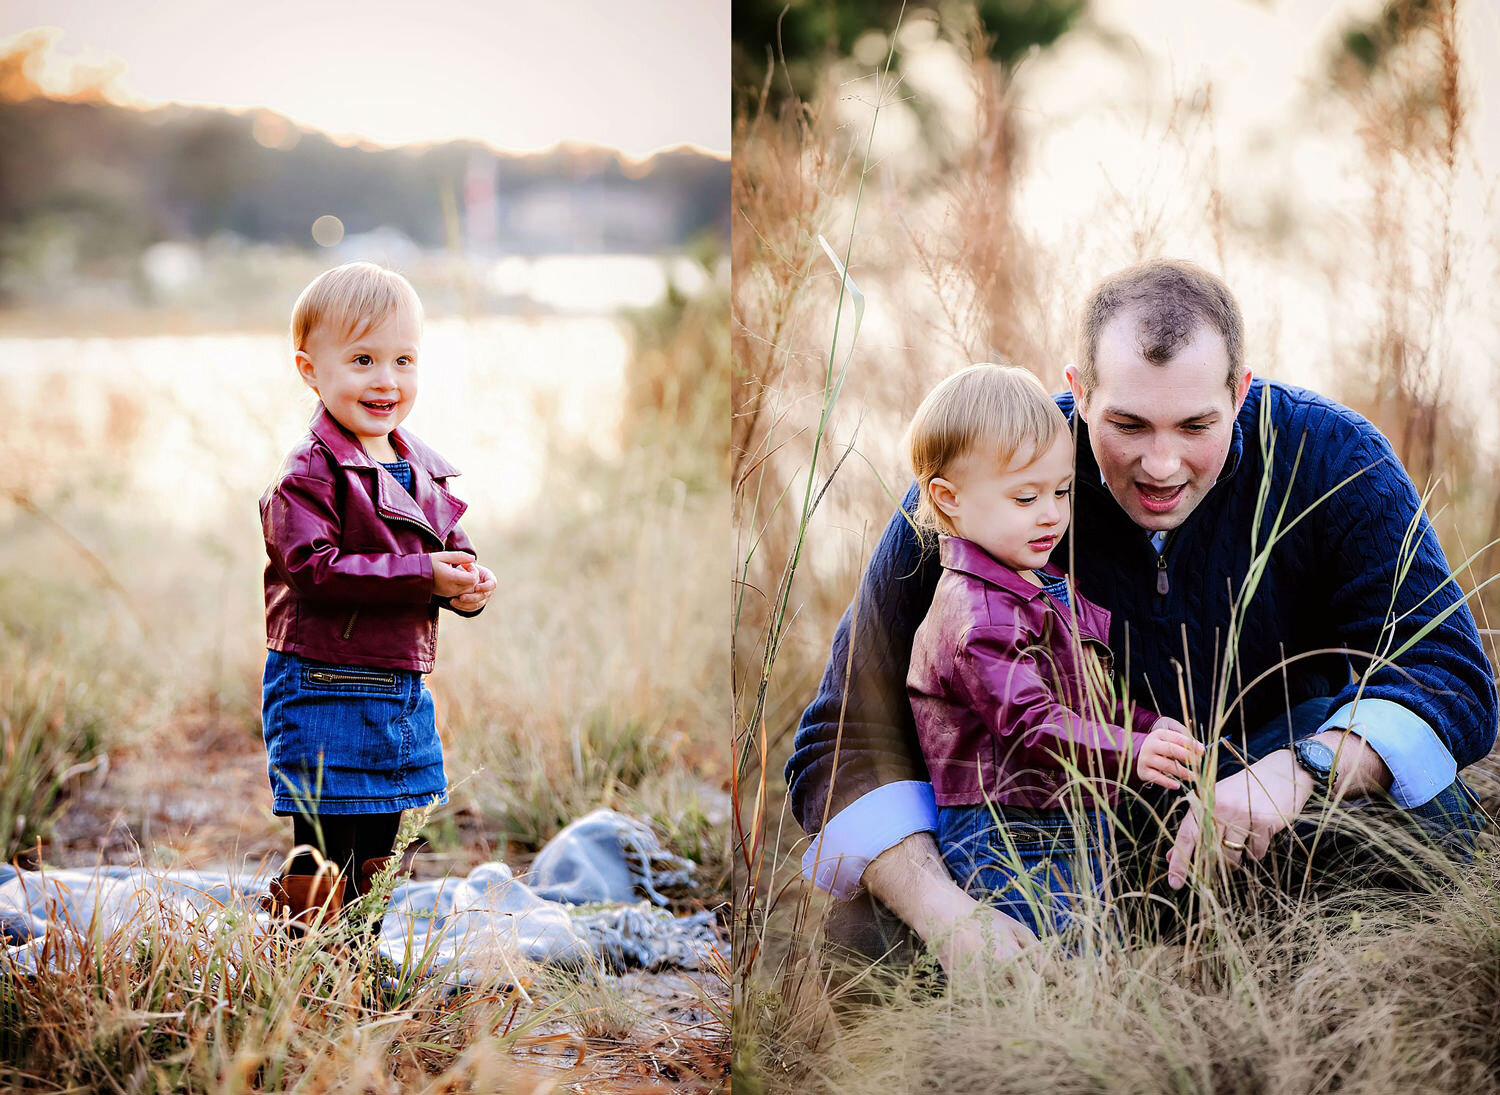 hampton-roads-lifestyle-photographer-melissa-bliss-photography-fall-session.jpg